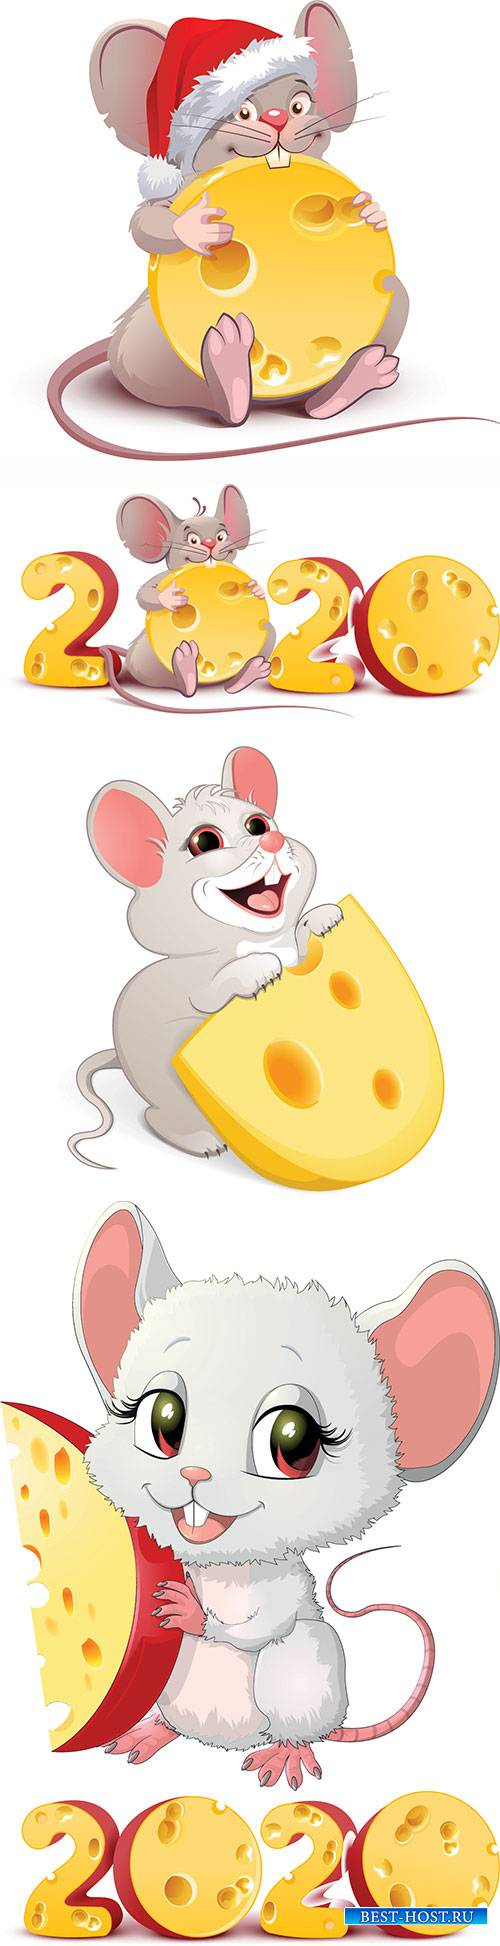 2020 year of rat to Chinese calendar